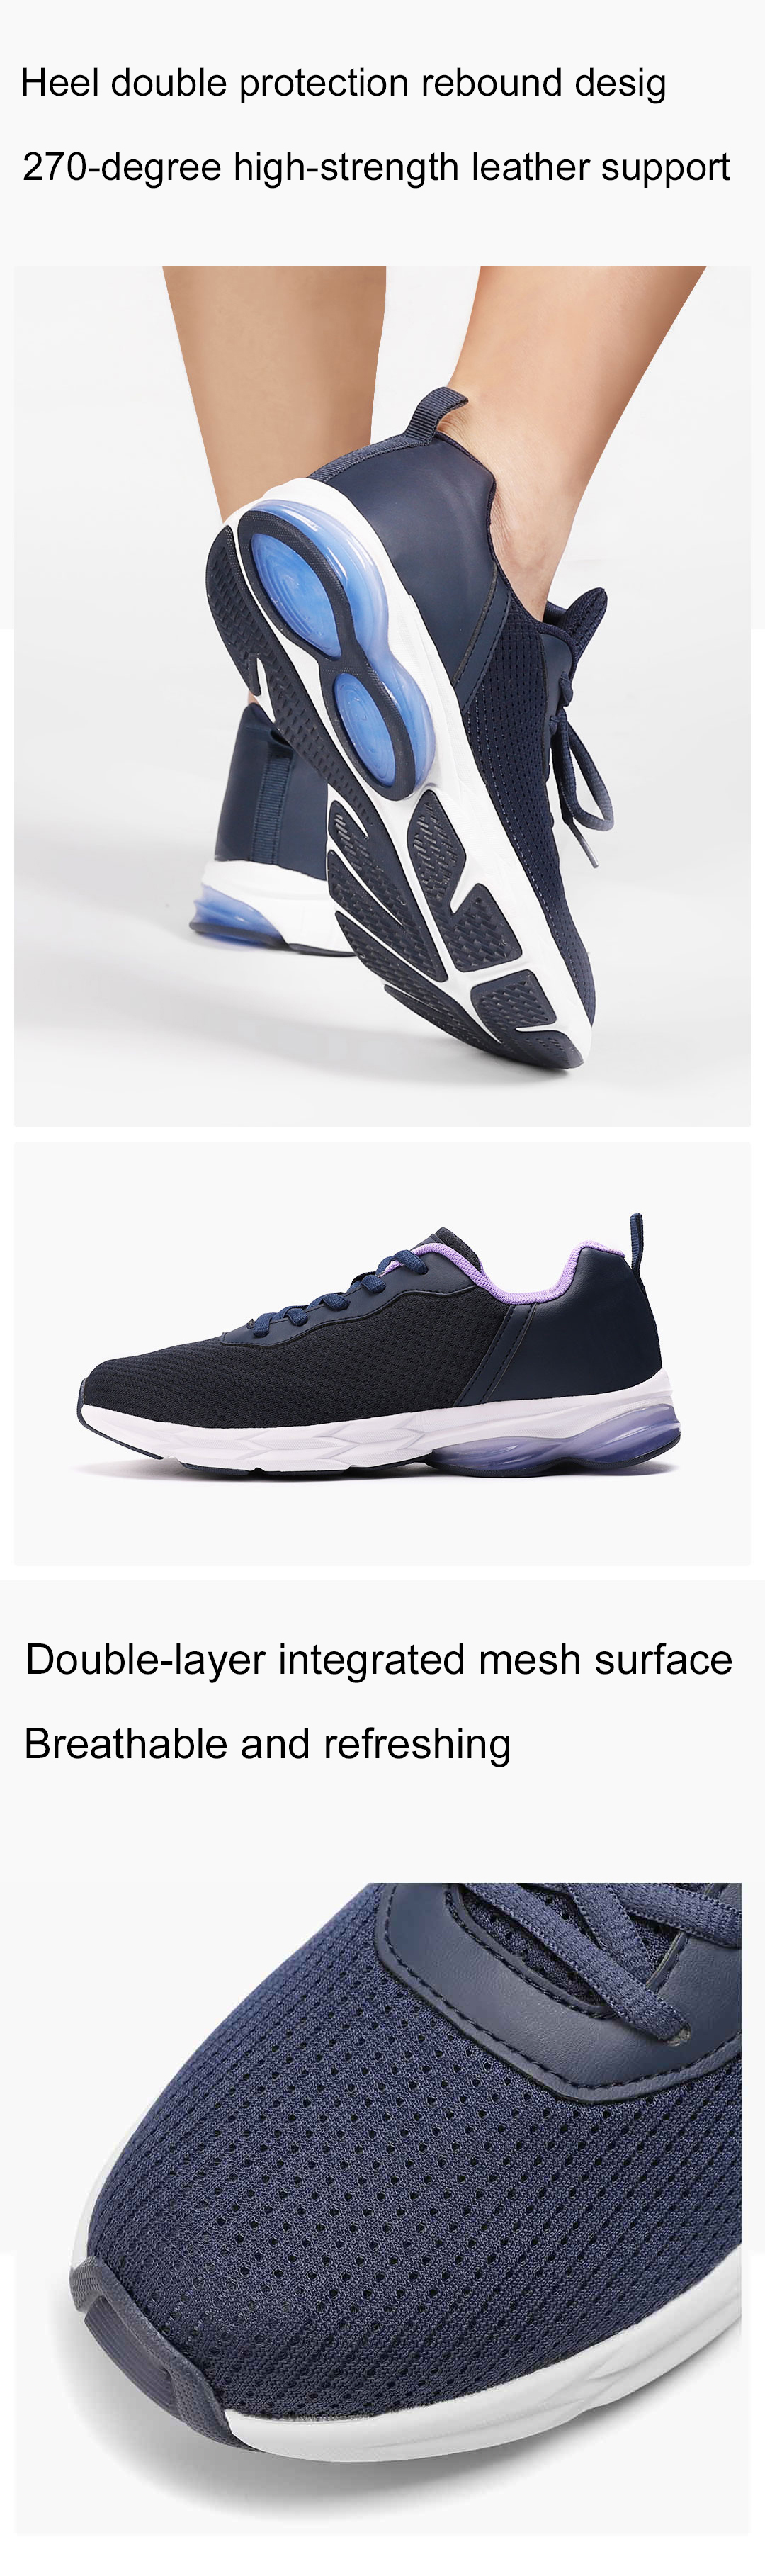 YUNCOO Shock Absorption Rubber Sports Running Shoes High Elastic Breathable Men Sneakers from xiaomi youpin